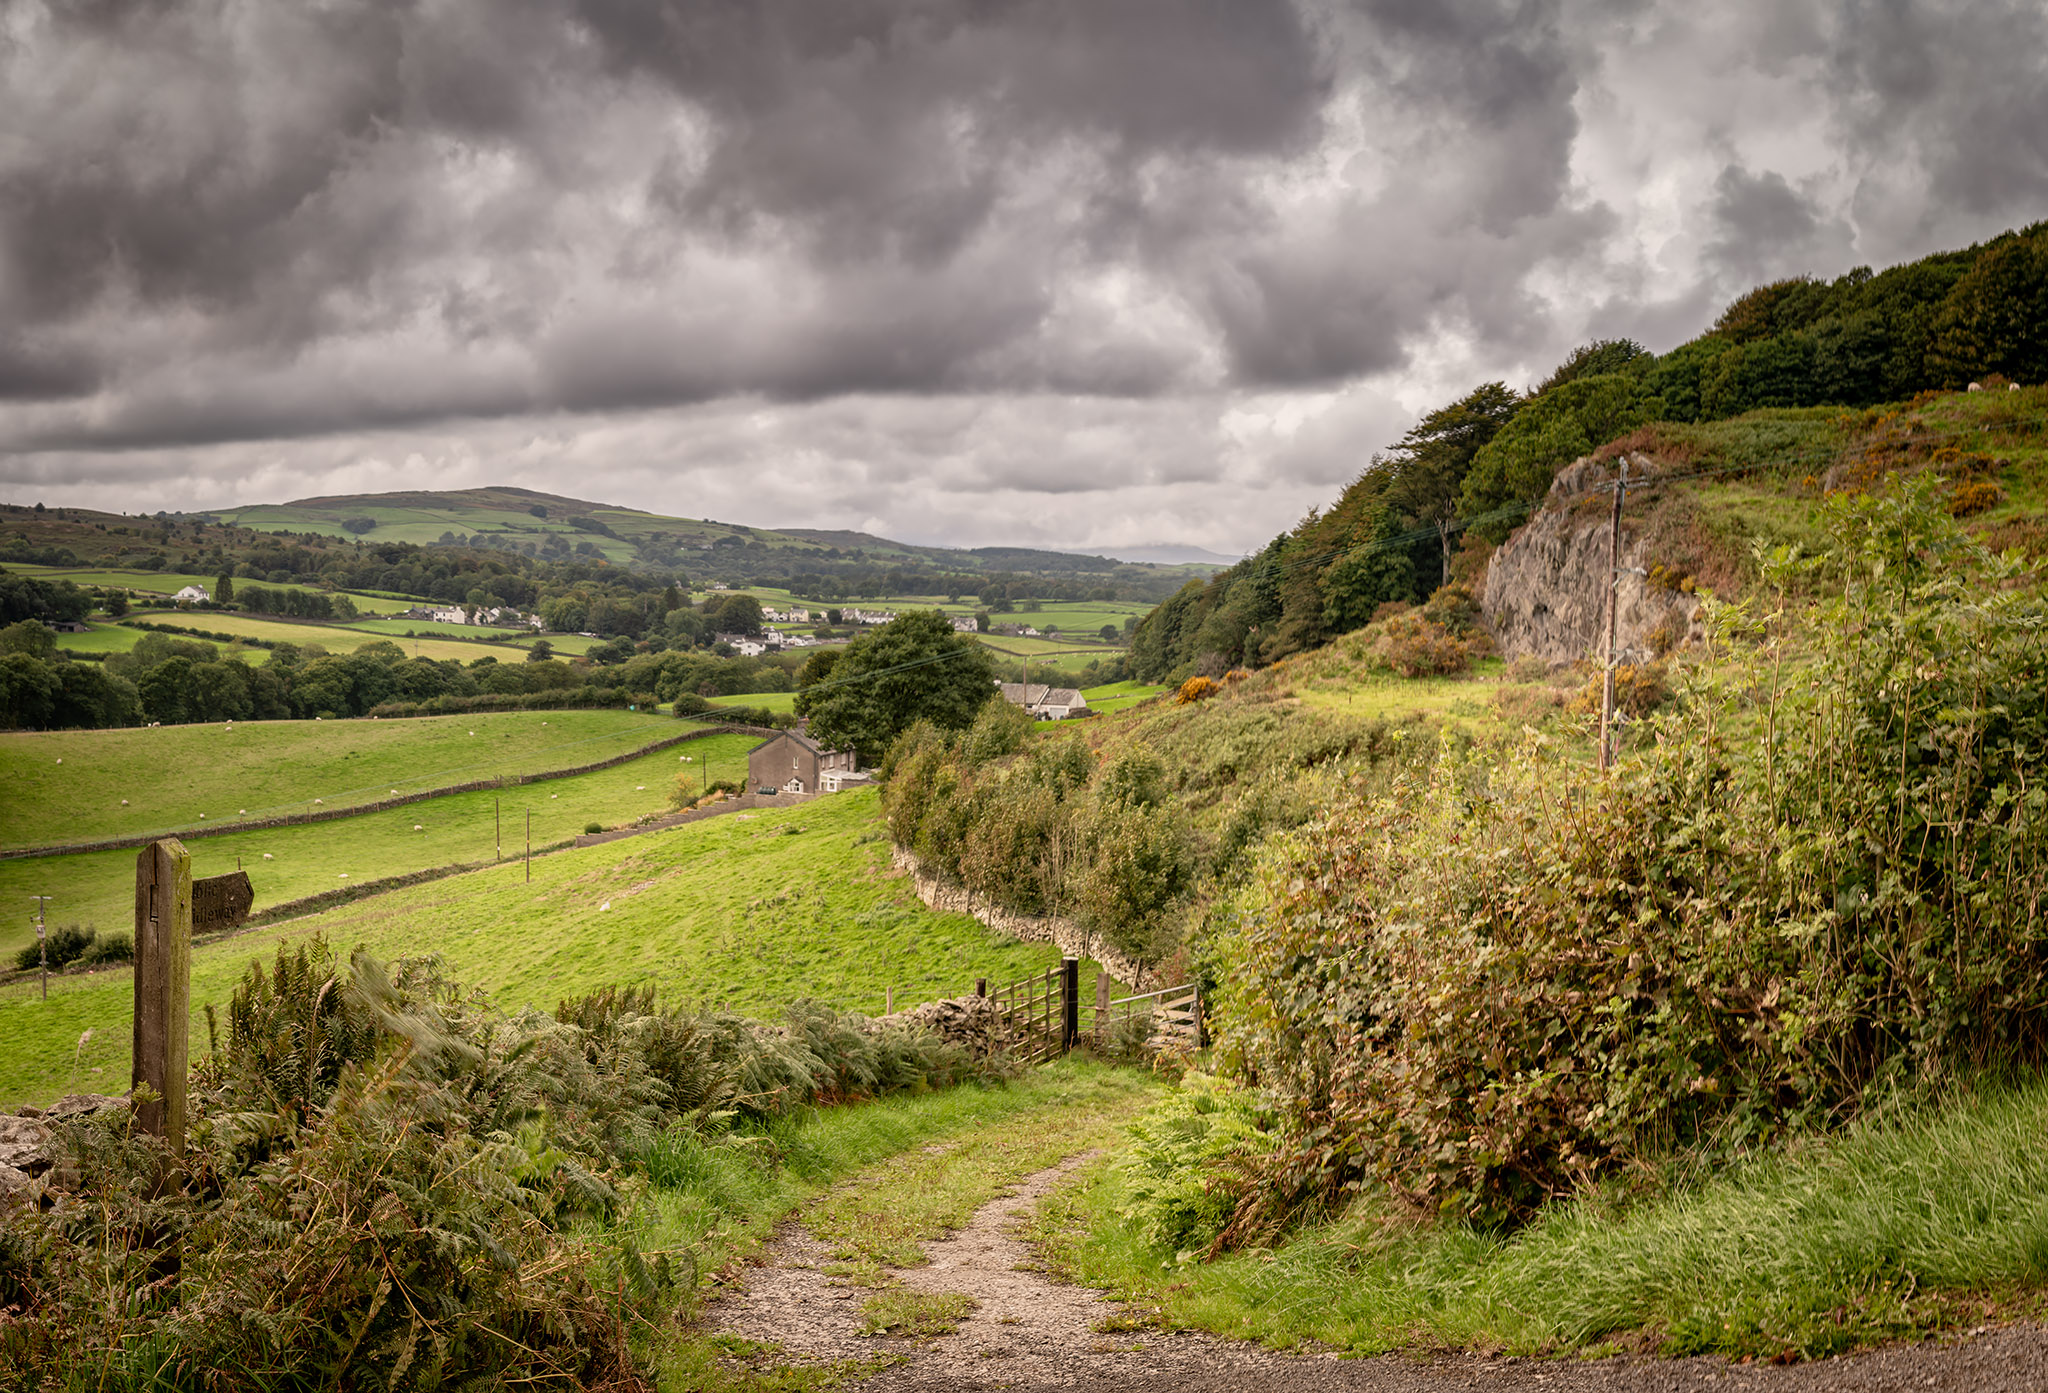 Saturday:  Above the Crake Valley